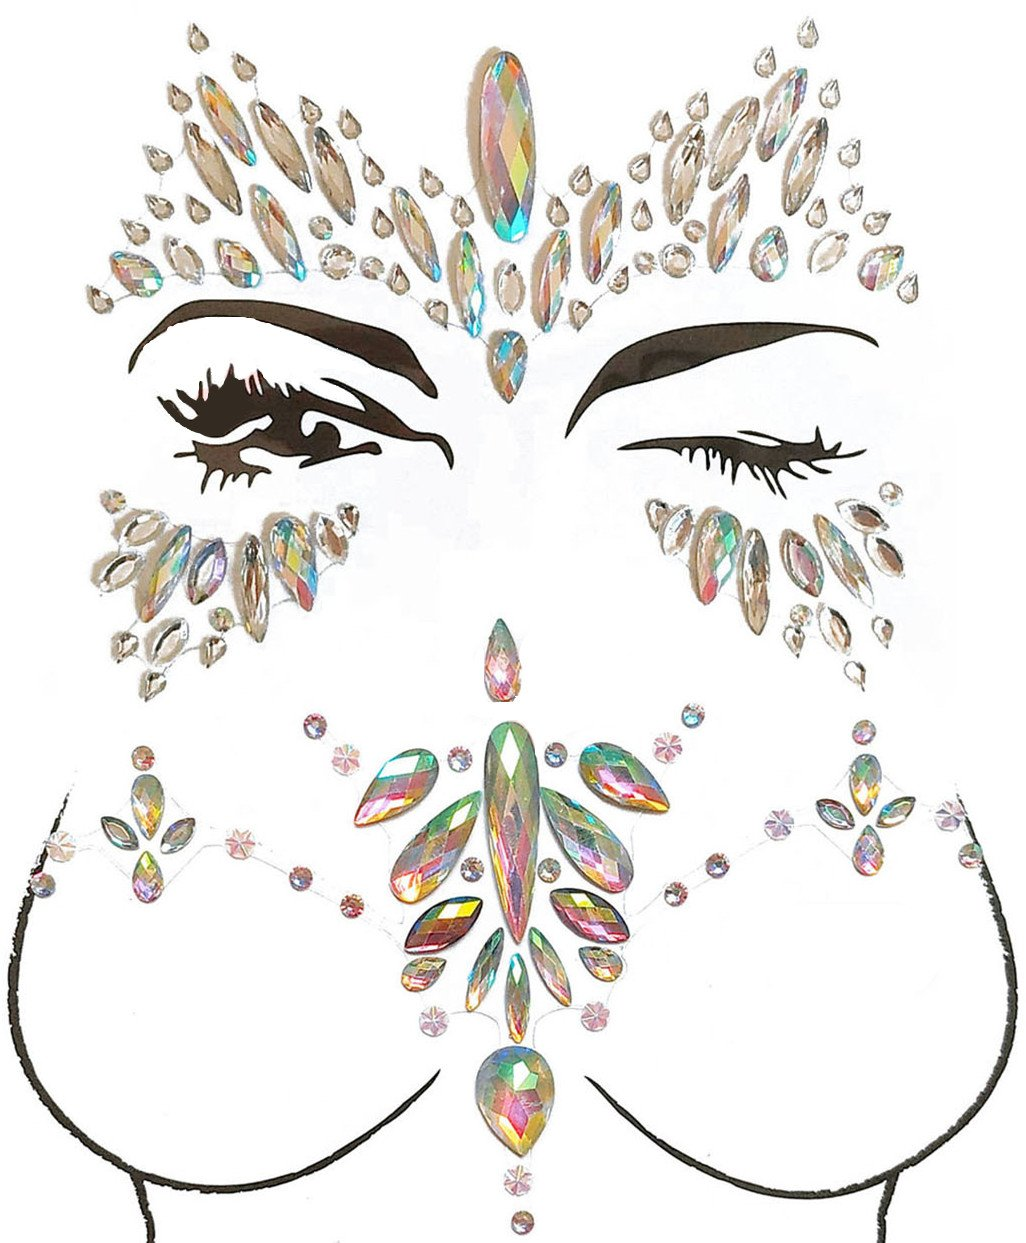 MineSign 8 Pack Face Jewels Festival Tattoo Set Face Gems Glitter Bindi Costume Makeup Rhinestone Eyes Body Rave Pasties for Party Roller (Mermaid Face Chest Kit) by MineSign (Image #3)